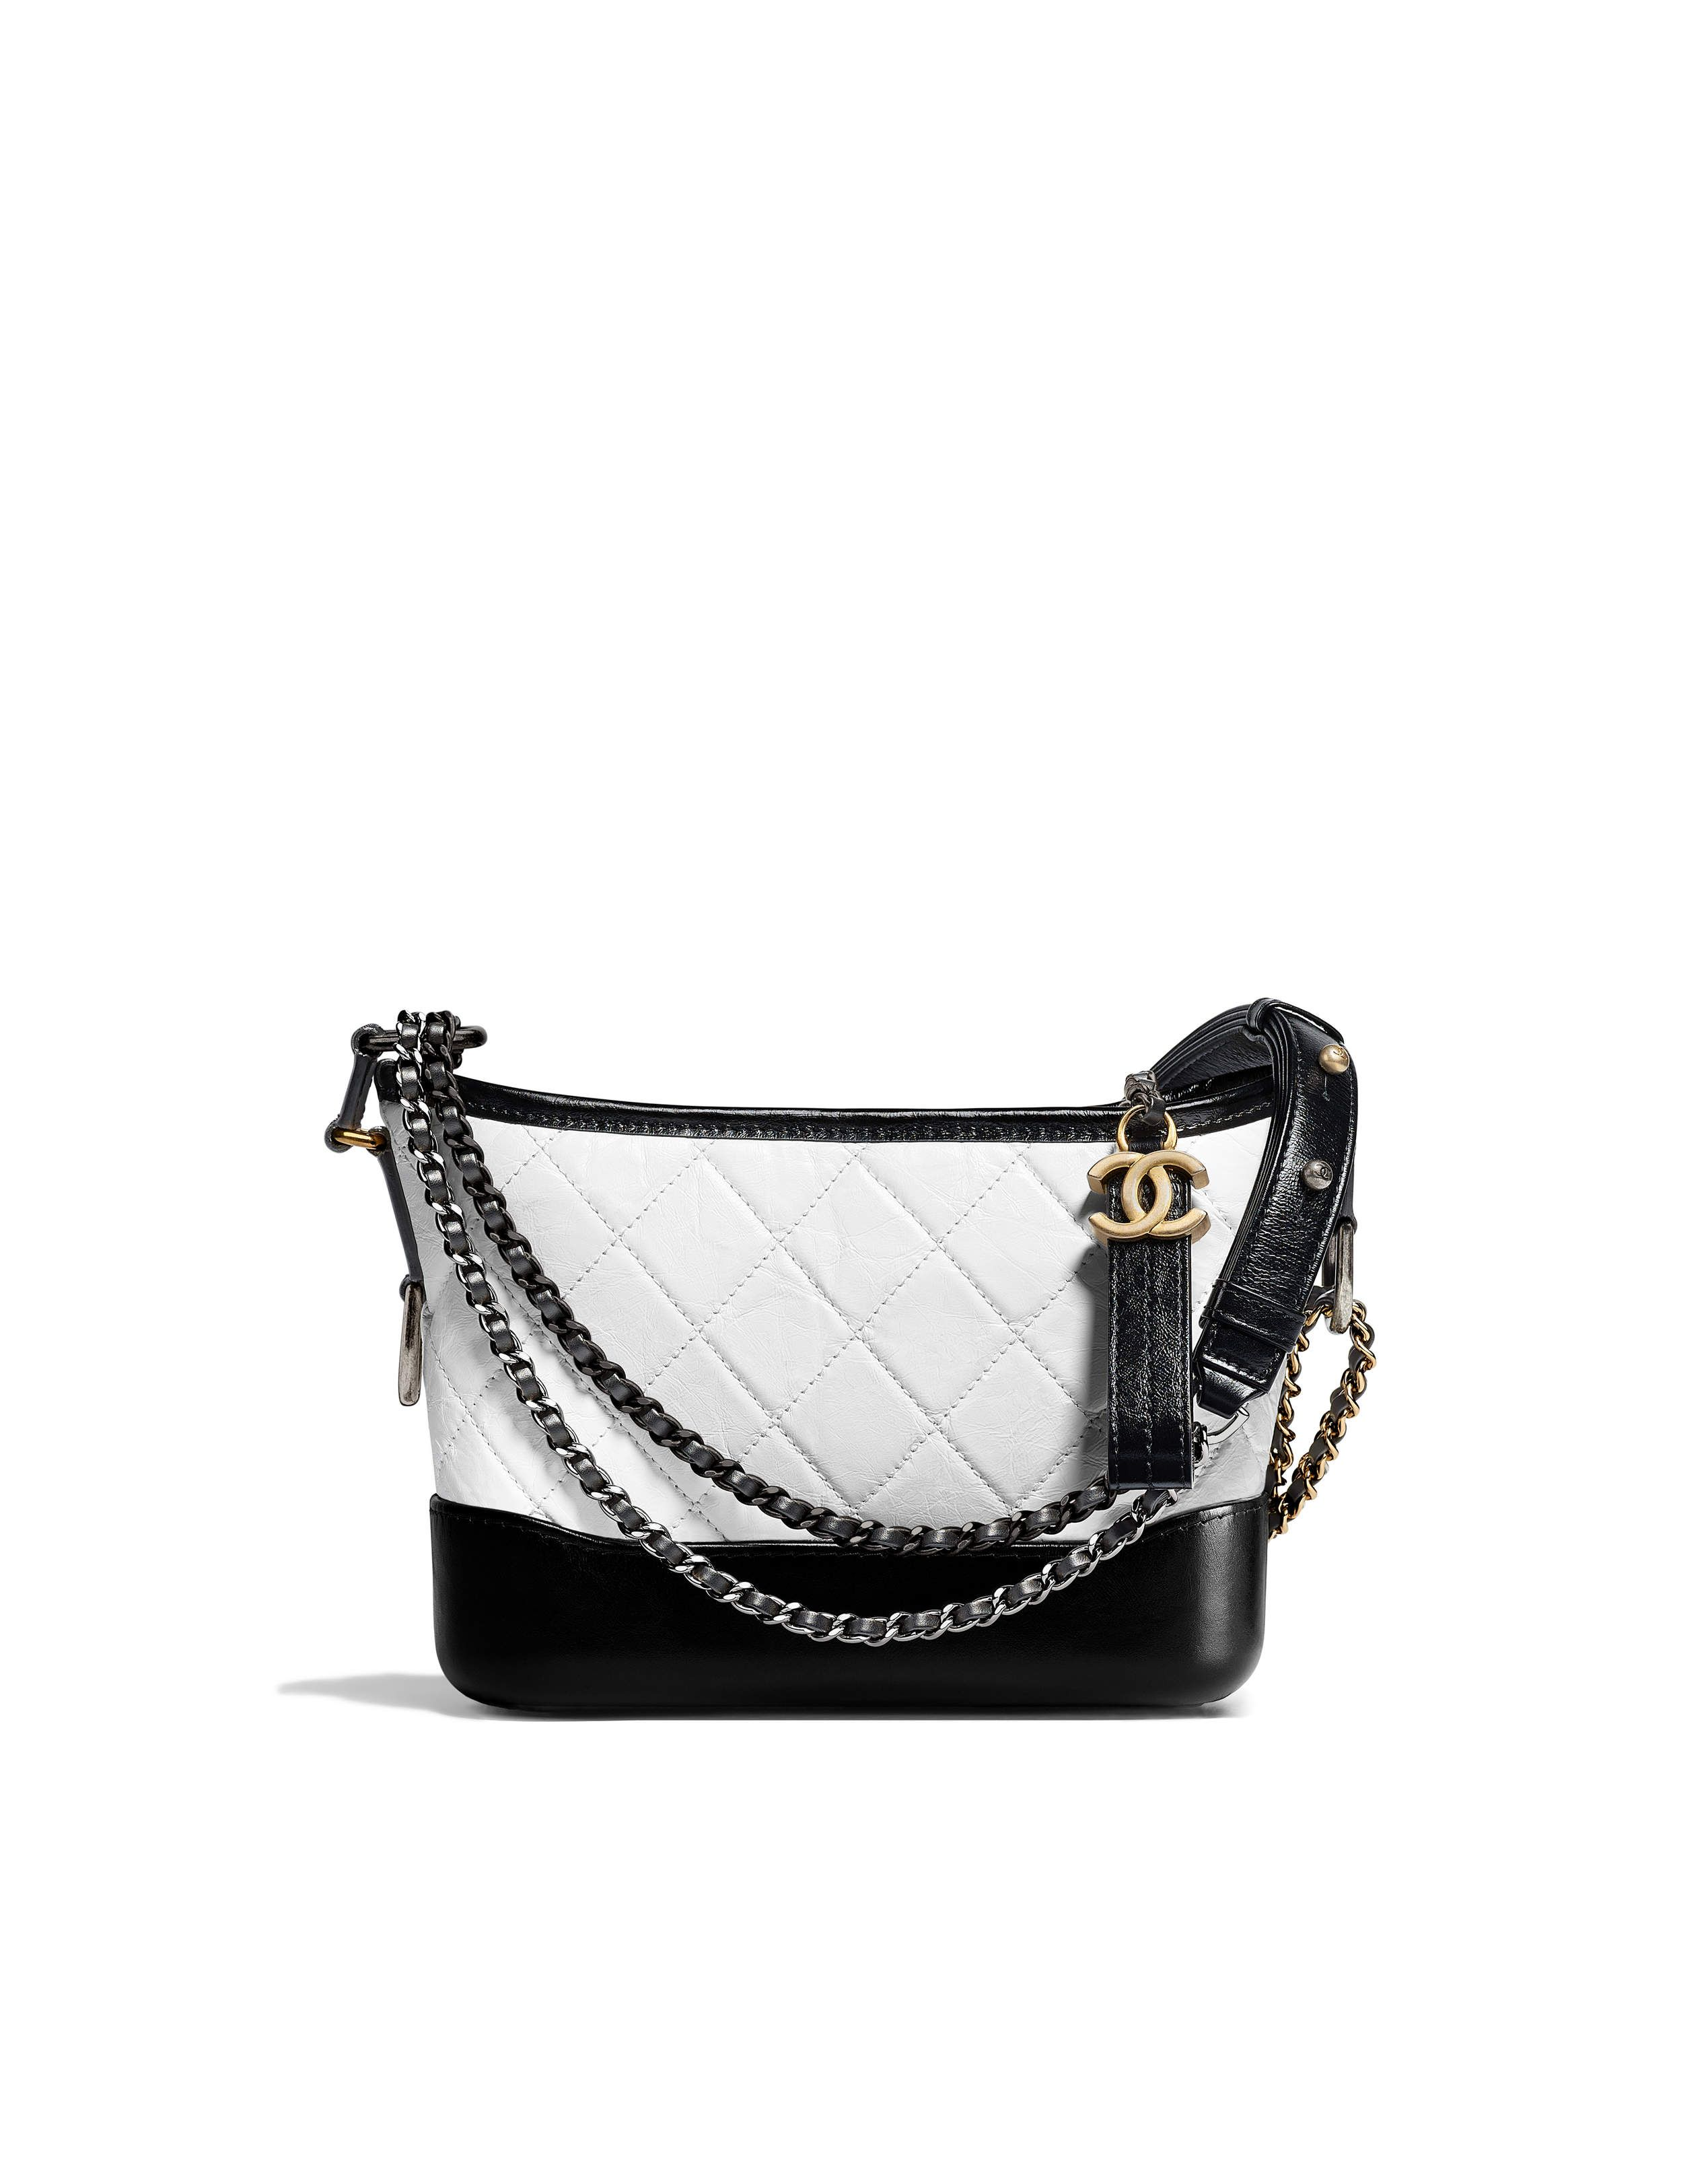 eb1f78ef8b5a37 Chanel - FW 2017/2018 | White & black aged calfskin Chanel's Gabrielle  small Hobo bag